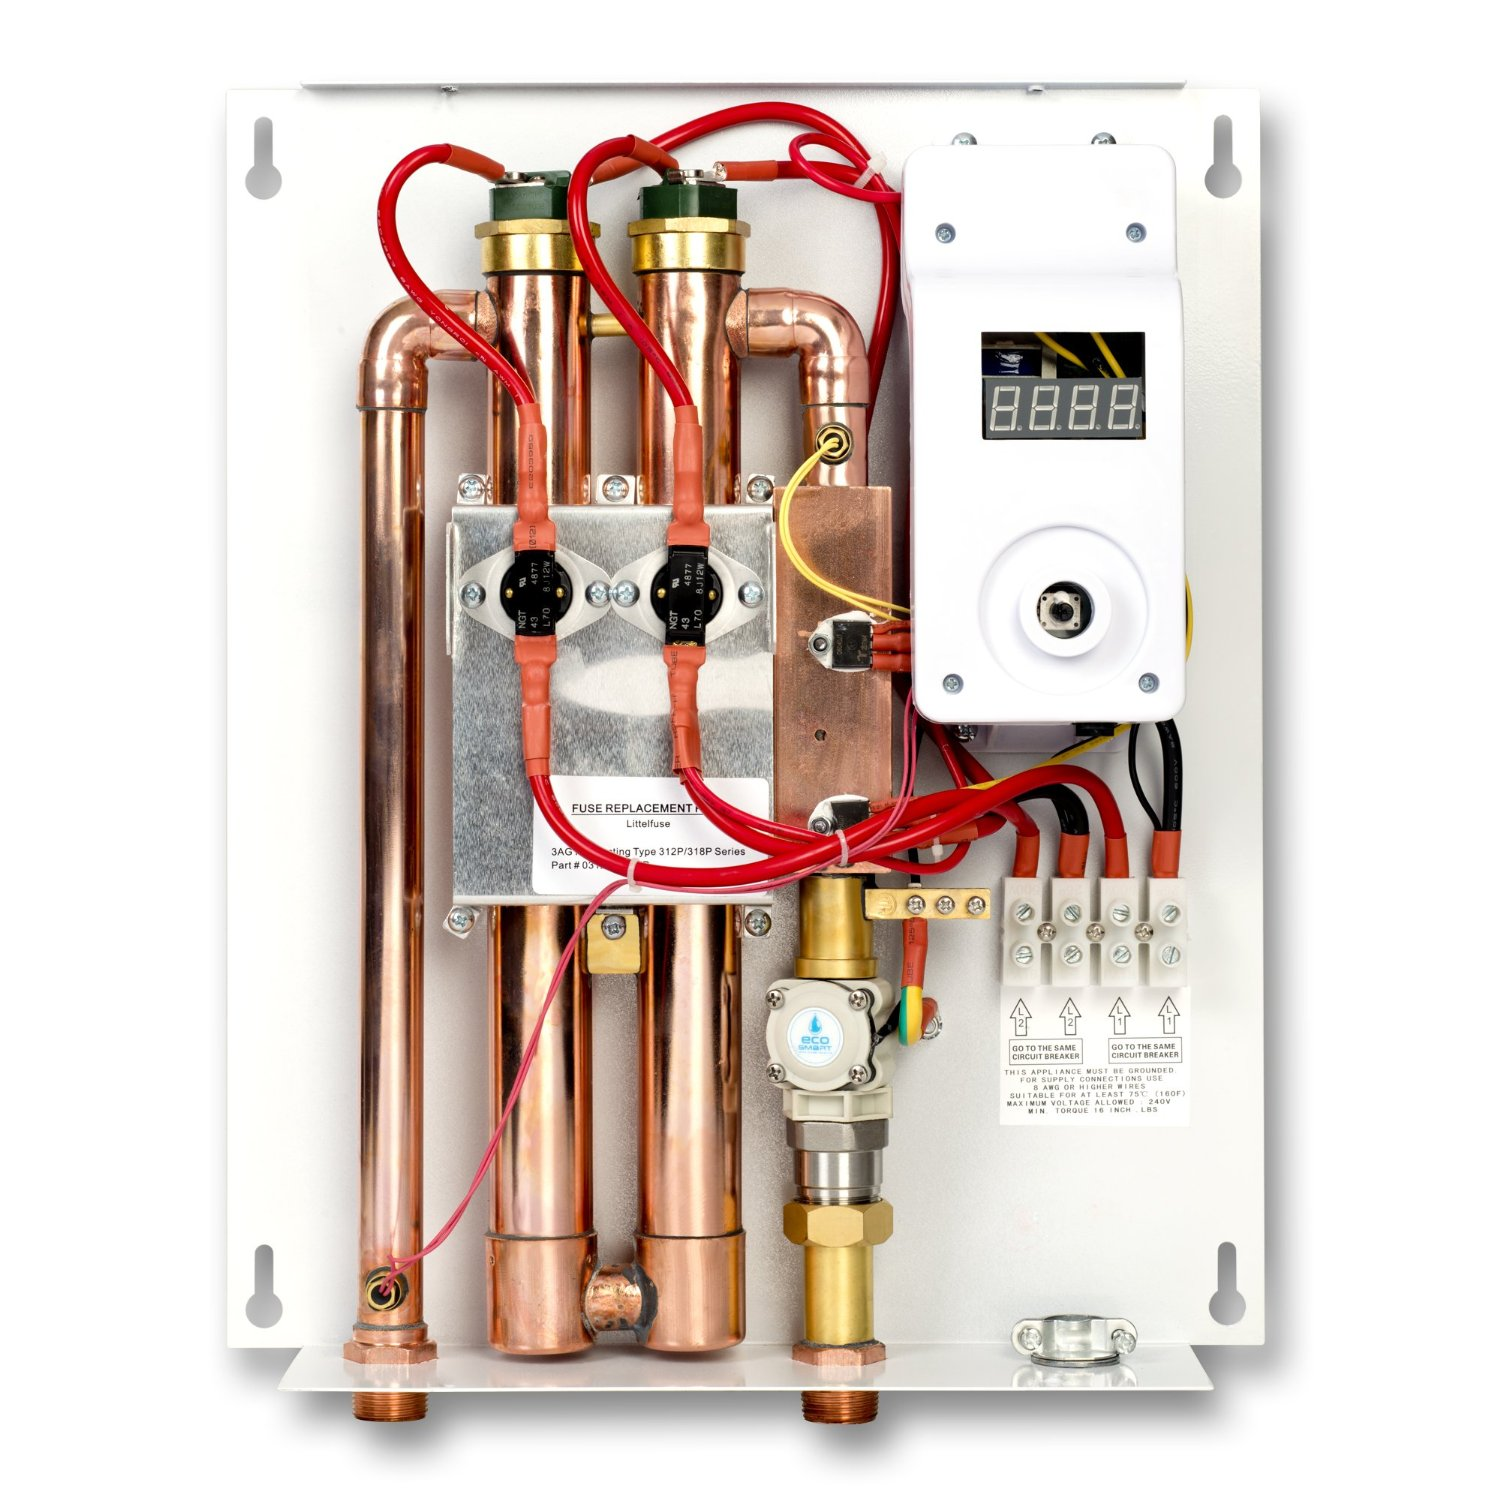 81Tny3DEHPL._SL1500_ ecosmart eco 18 electric tankless water heater patented self rheem rte 9 wiring diagram at bayanpartner.co